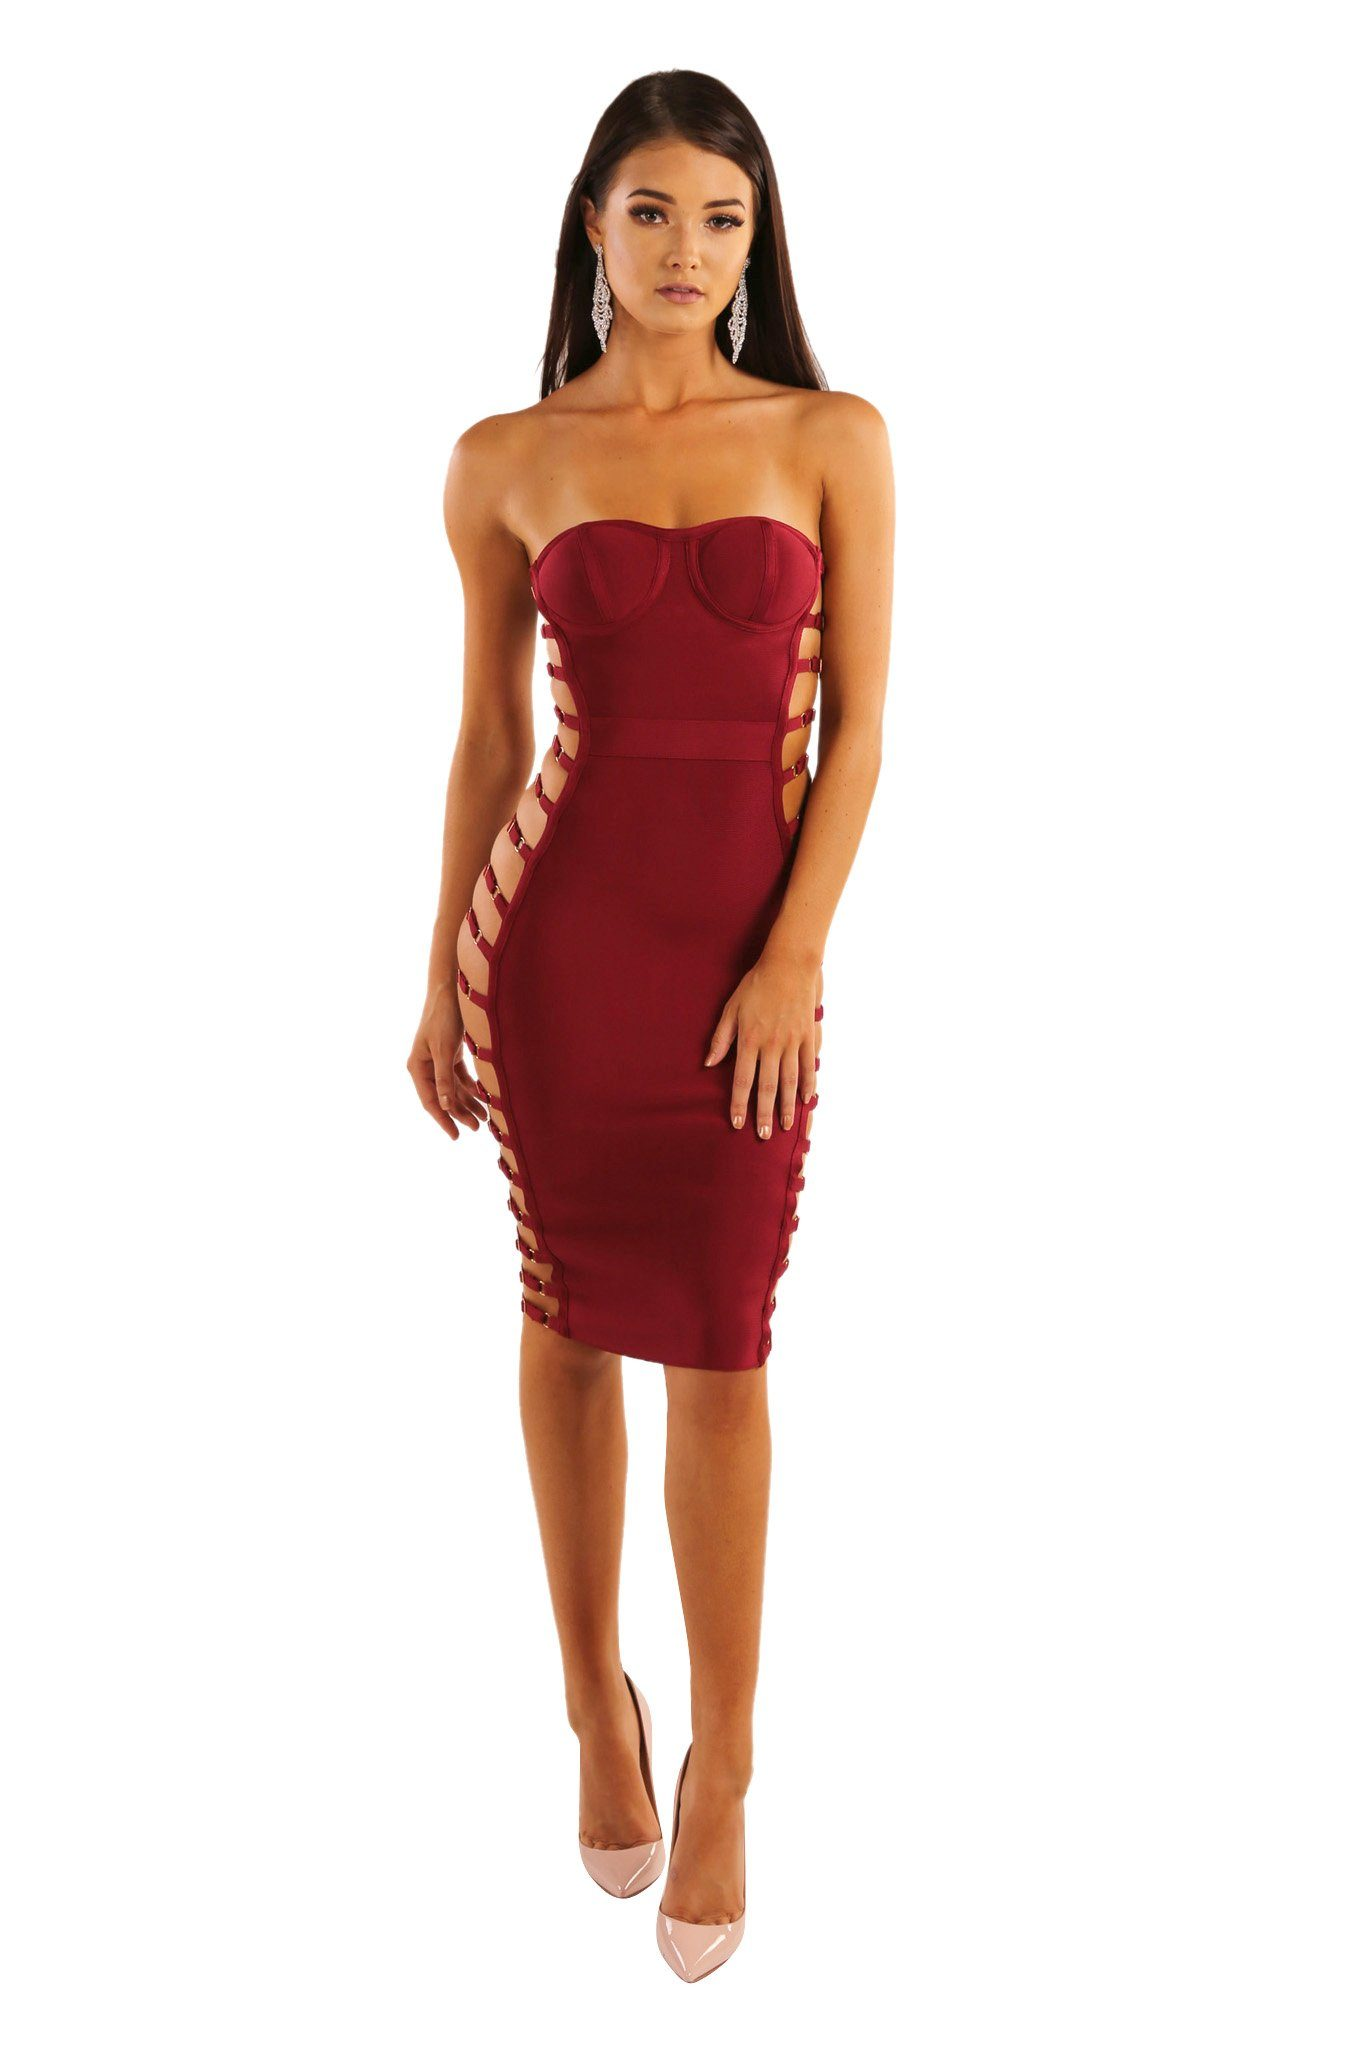 Maroon wine red strapless knee length bandage dress subtle sweetheart neckline side cutouts with faux gold buttons